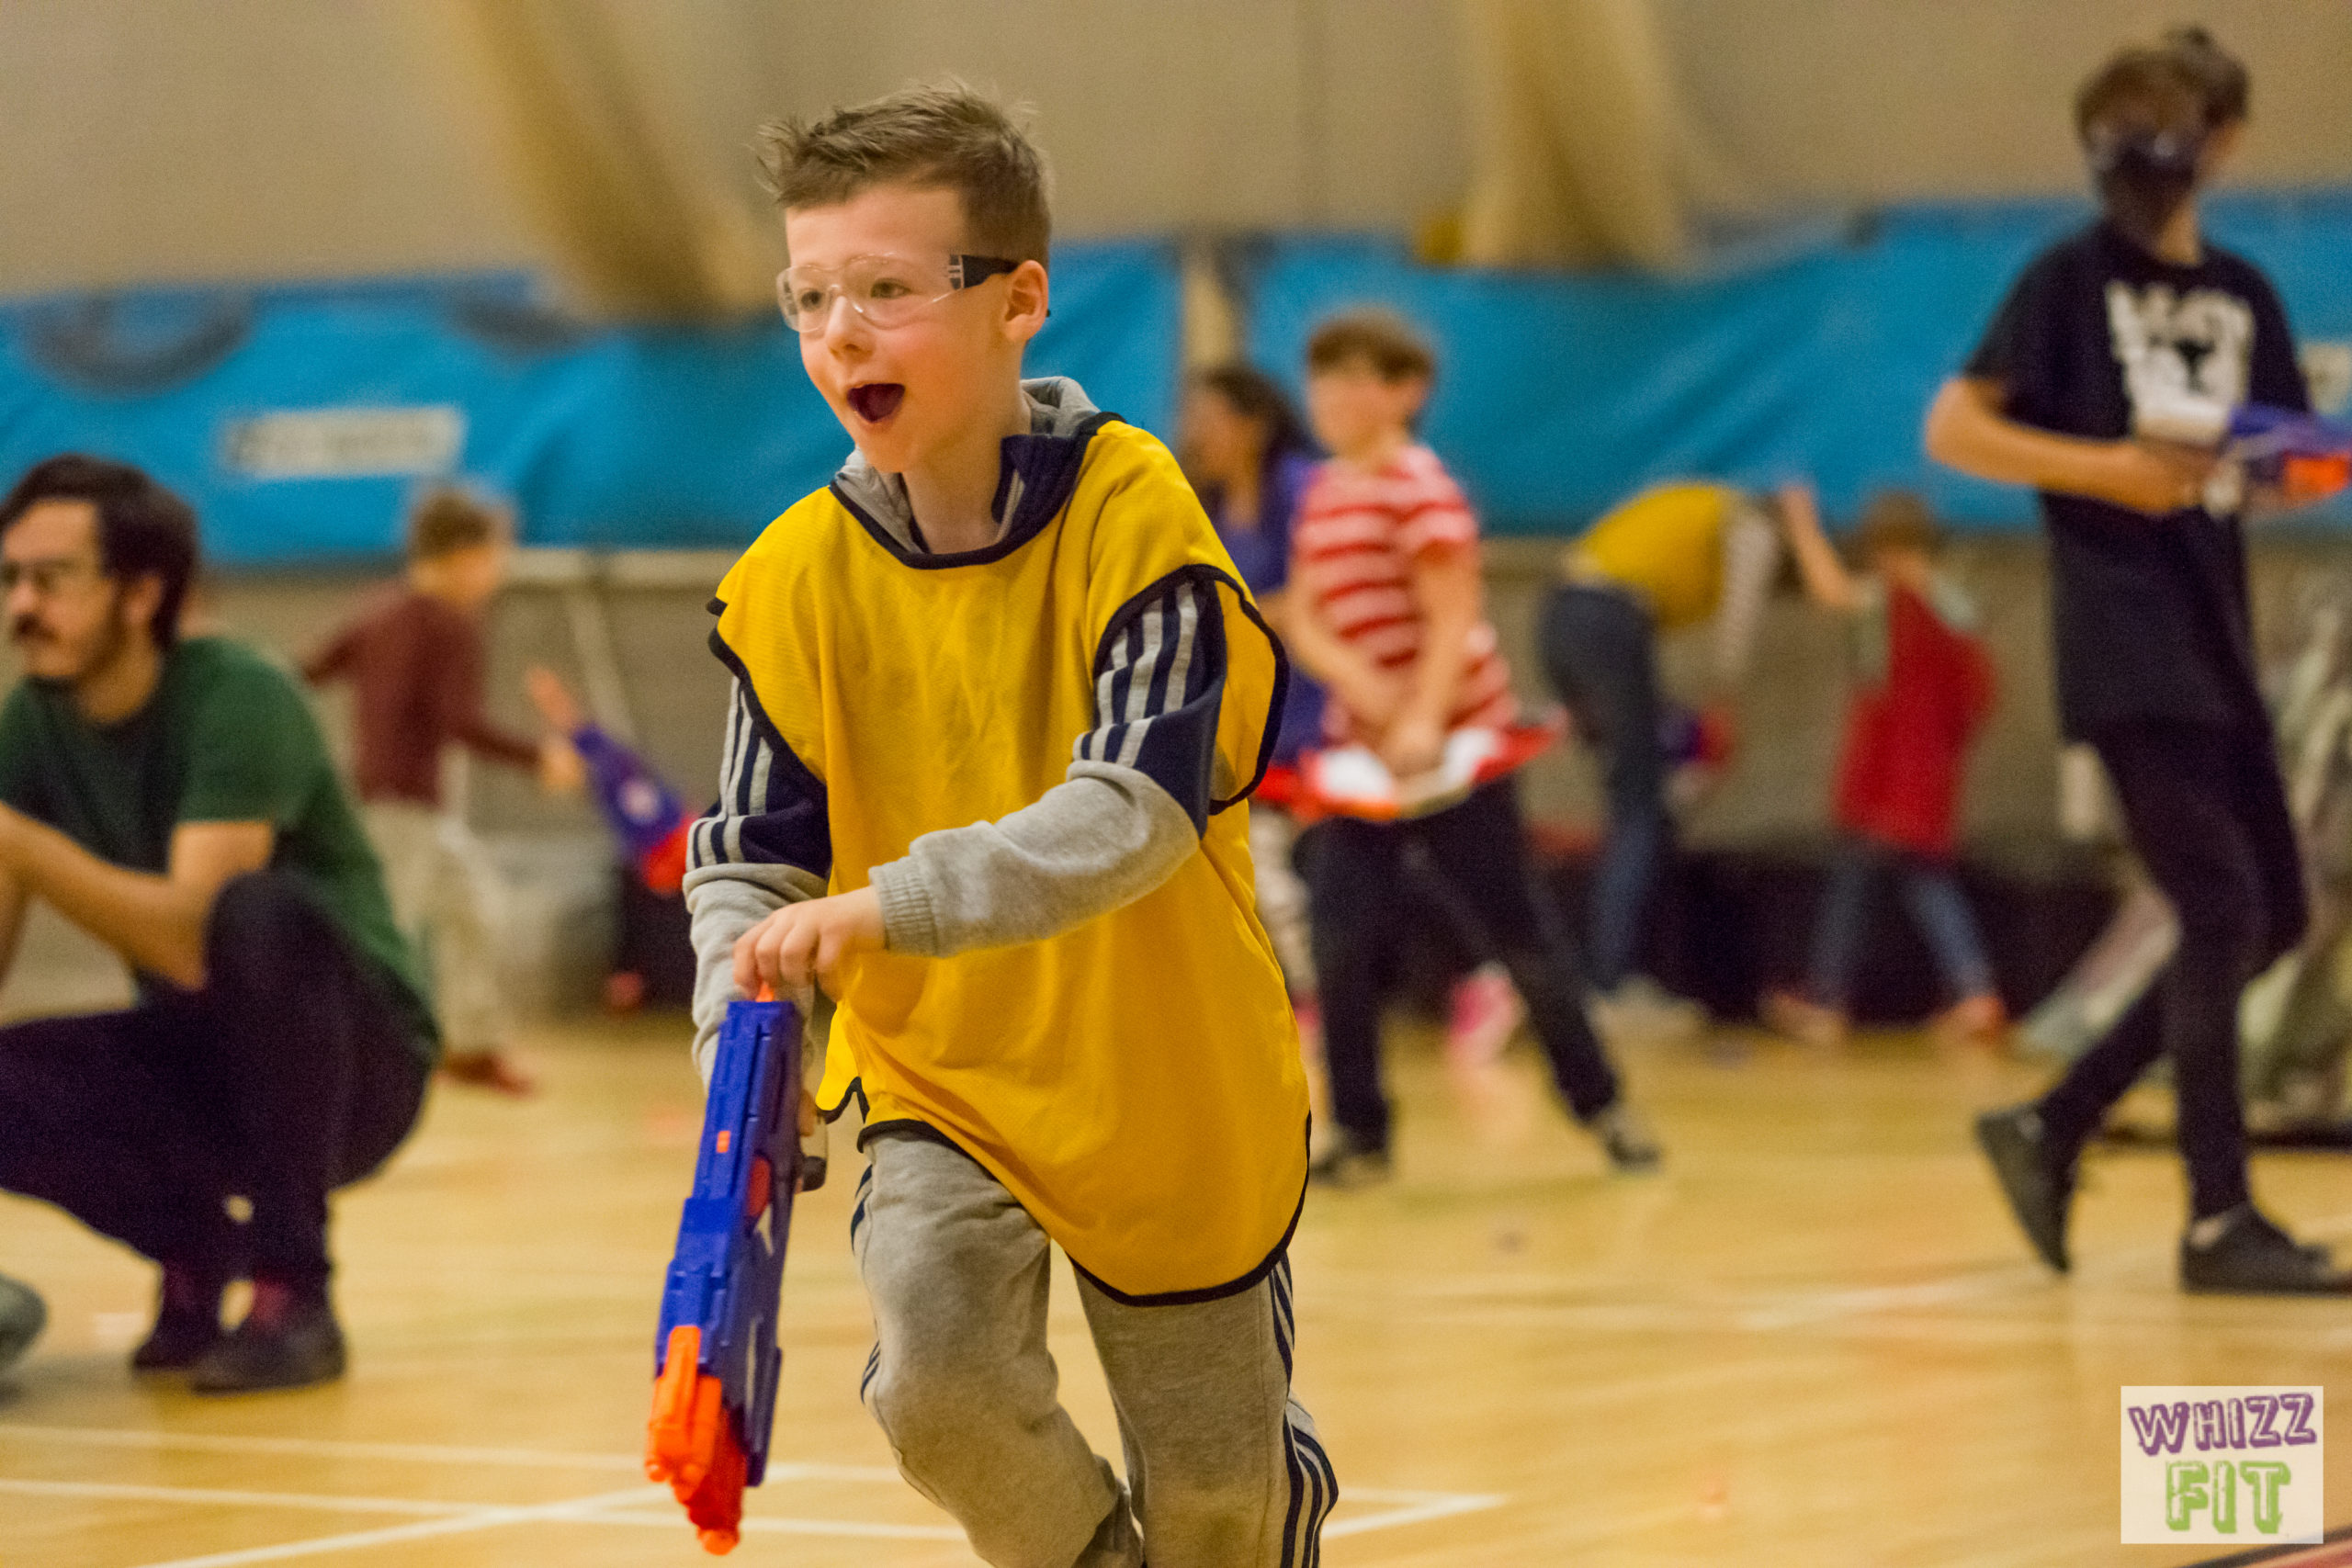 Nerf Wars Party at New Malden Leisure Centre